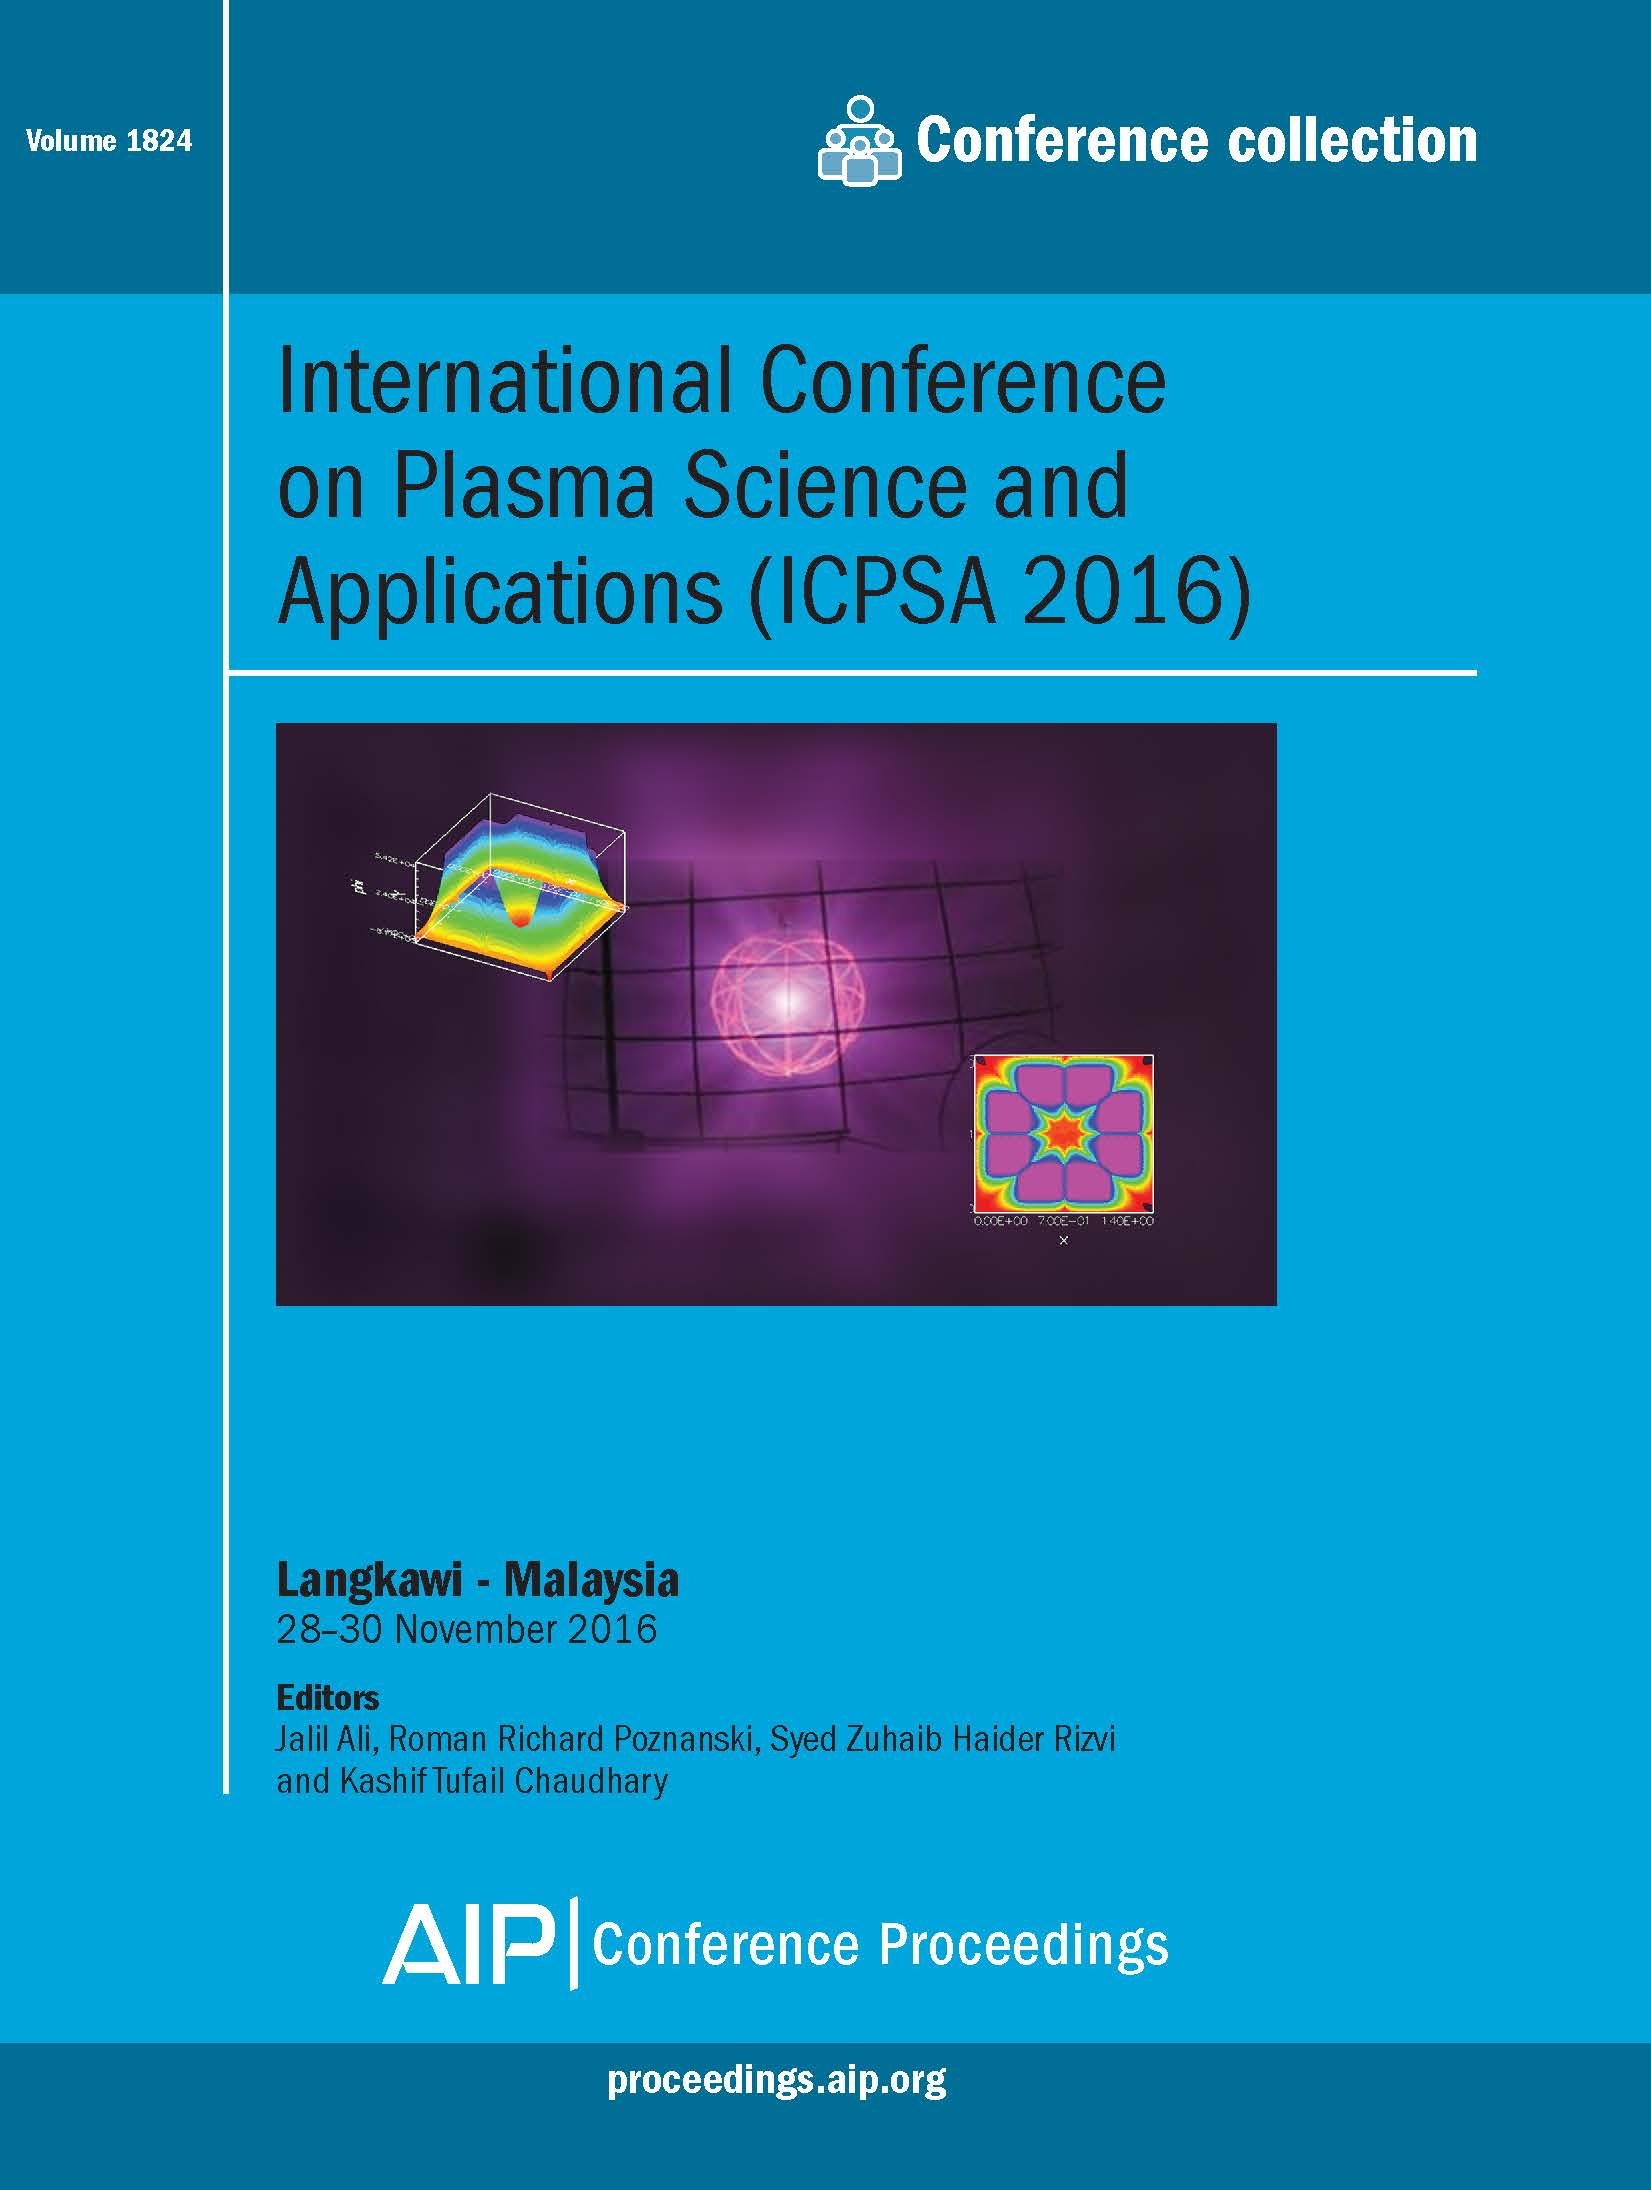 Volume 1824: International Conference on Plasma Science and